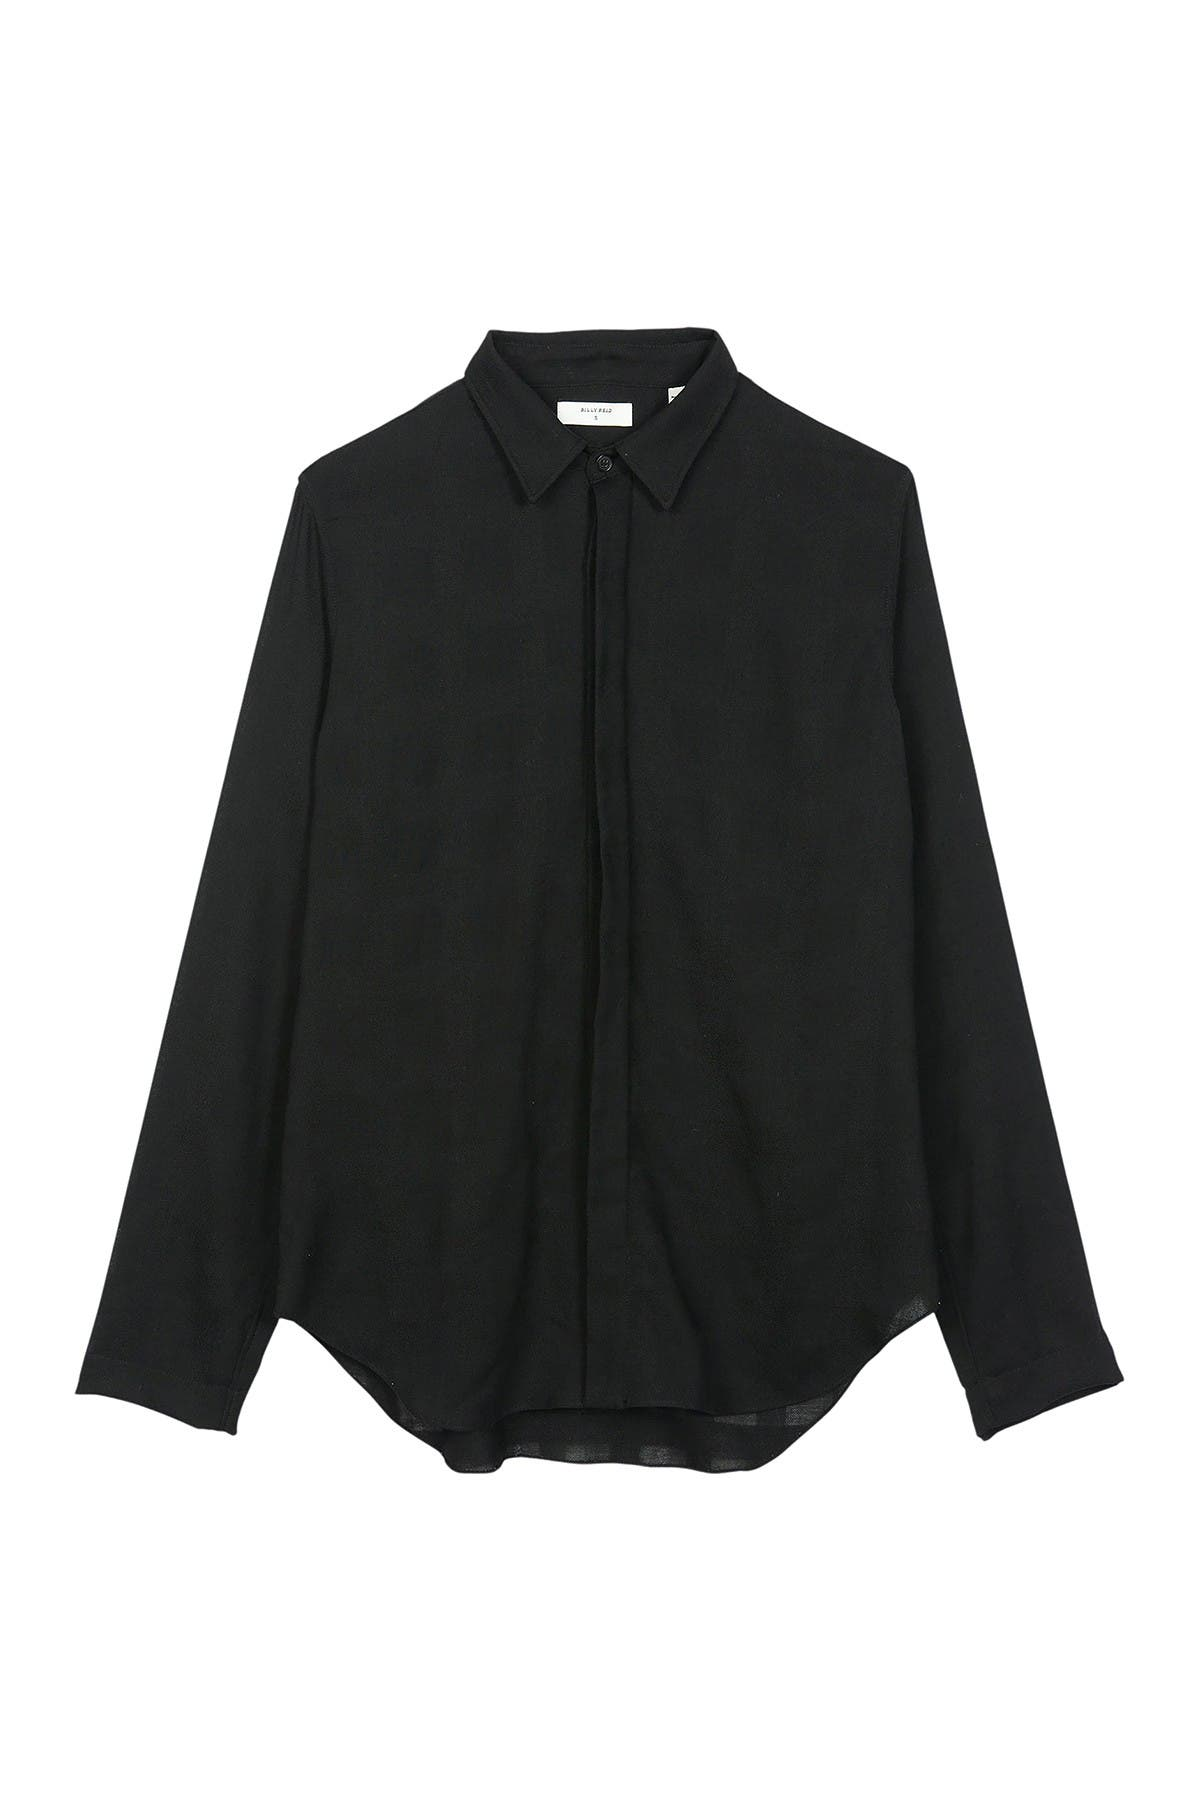 Image of Billy Reid Wool Blended Button Front Blouse